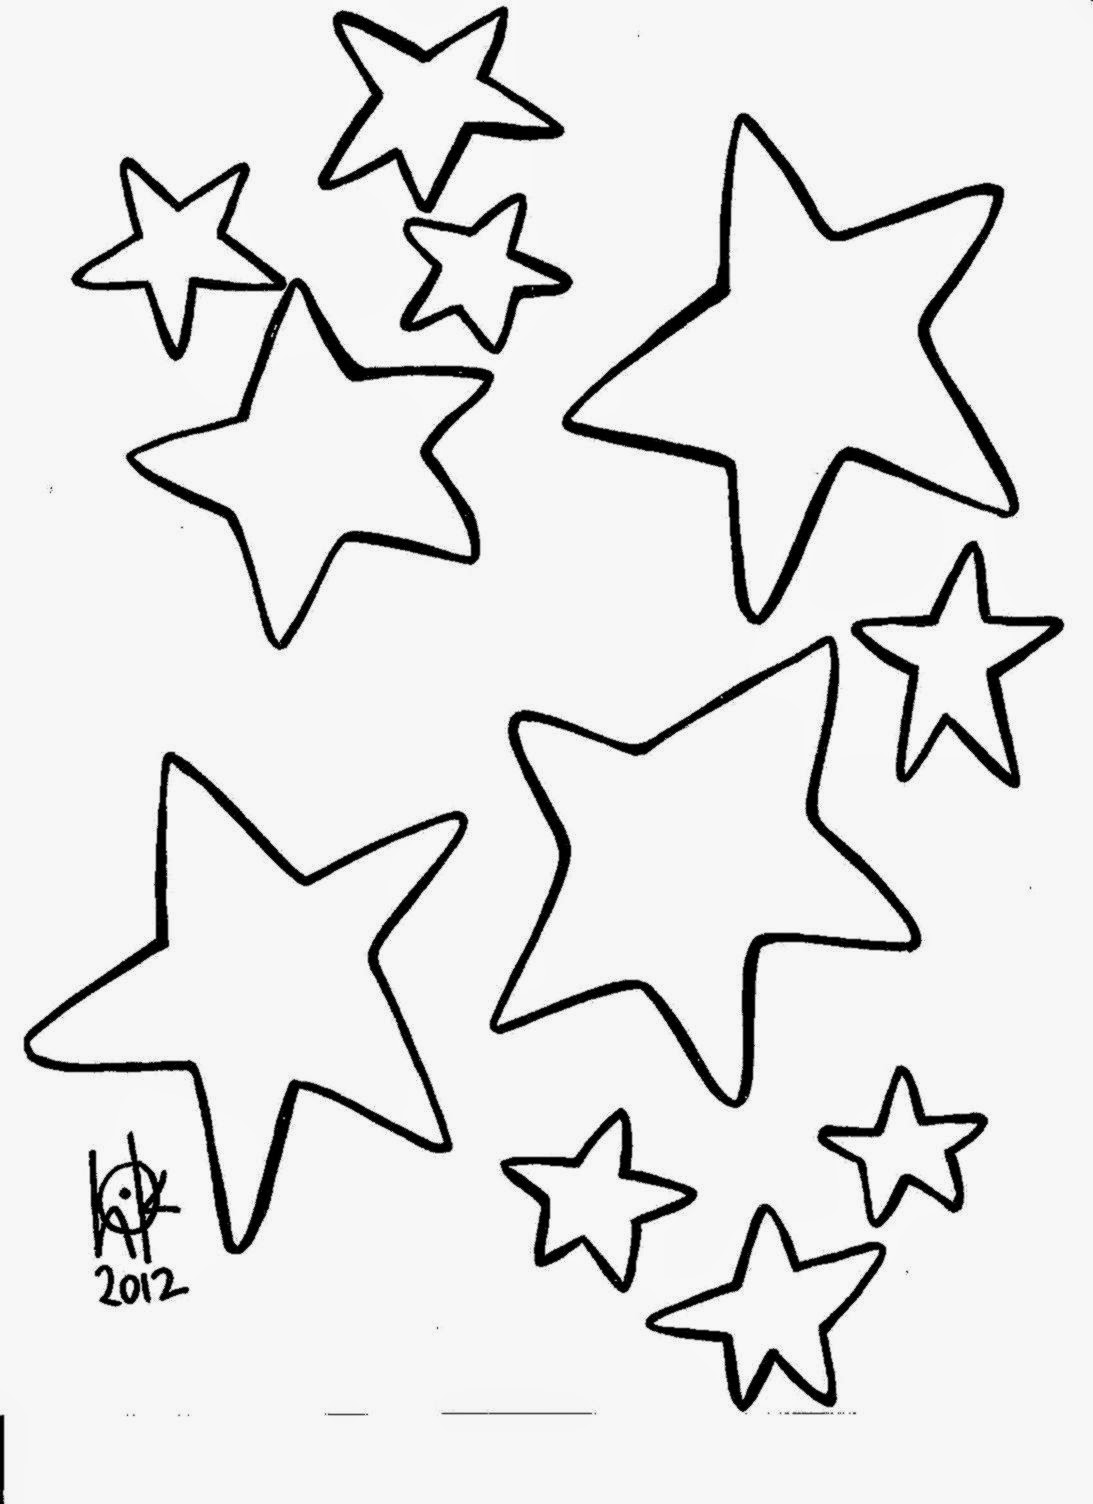 Coloring pictures of stars free coloring pictures for Stars coloring pages